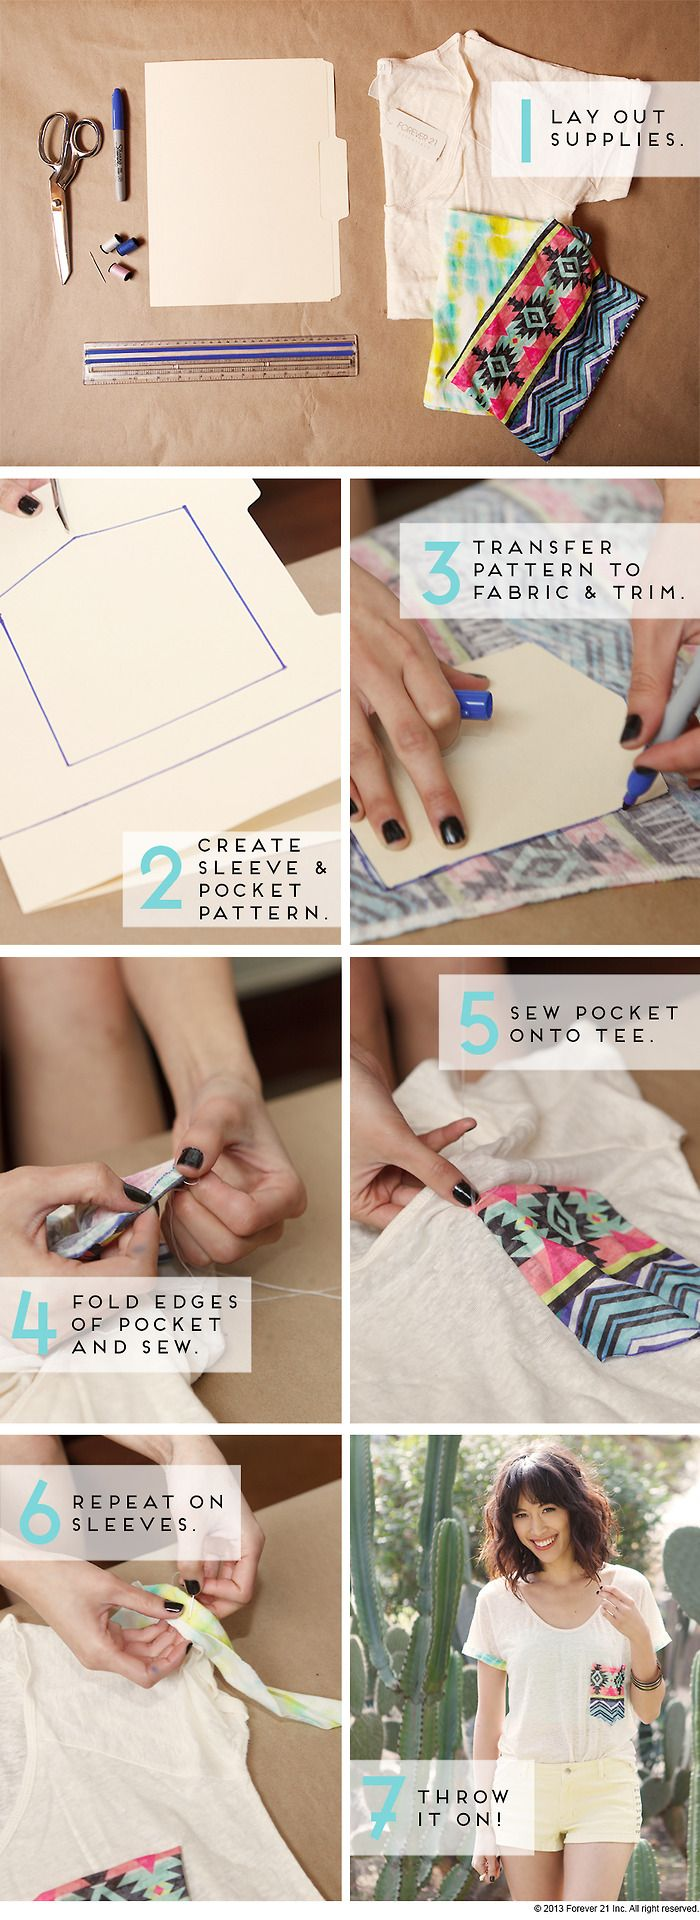 get-crafty:  DIY Pocket Tee There are a lot of tutorials for pocket tees, but I think this video tutorial by Forever 21 is my favorite that I've seen. It does require sewing, but you don't need to know how to use a sewing machine. I also love how she added an extra touch by sewing strips of fabric on the sleeves as well.